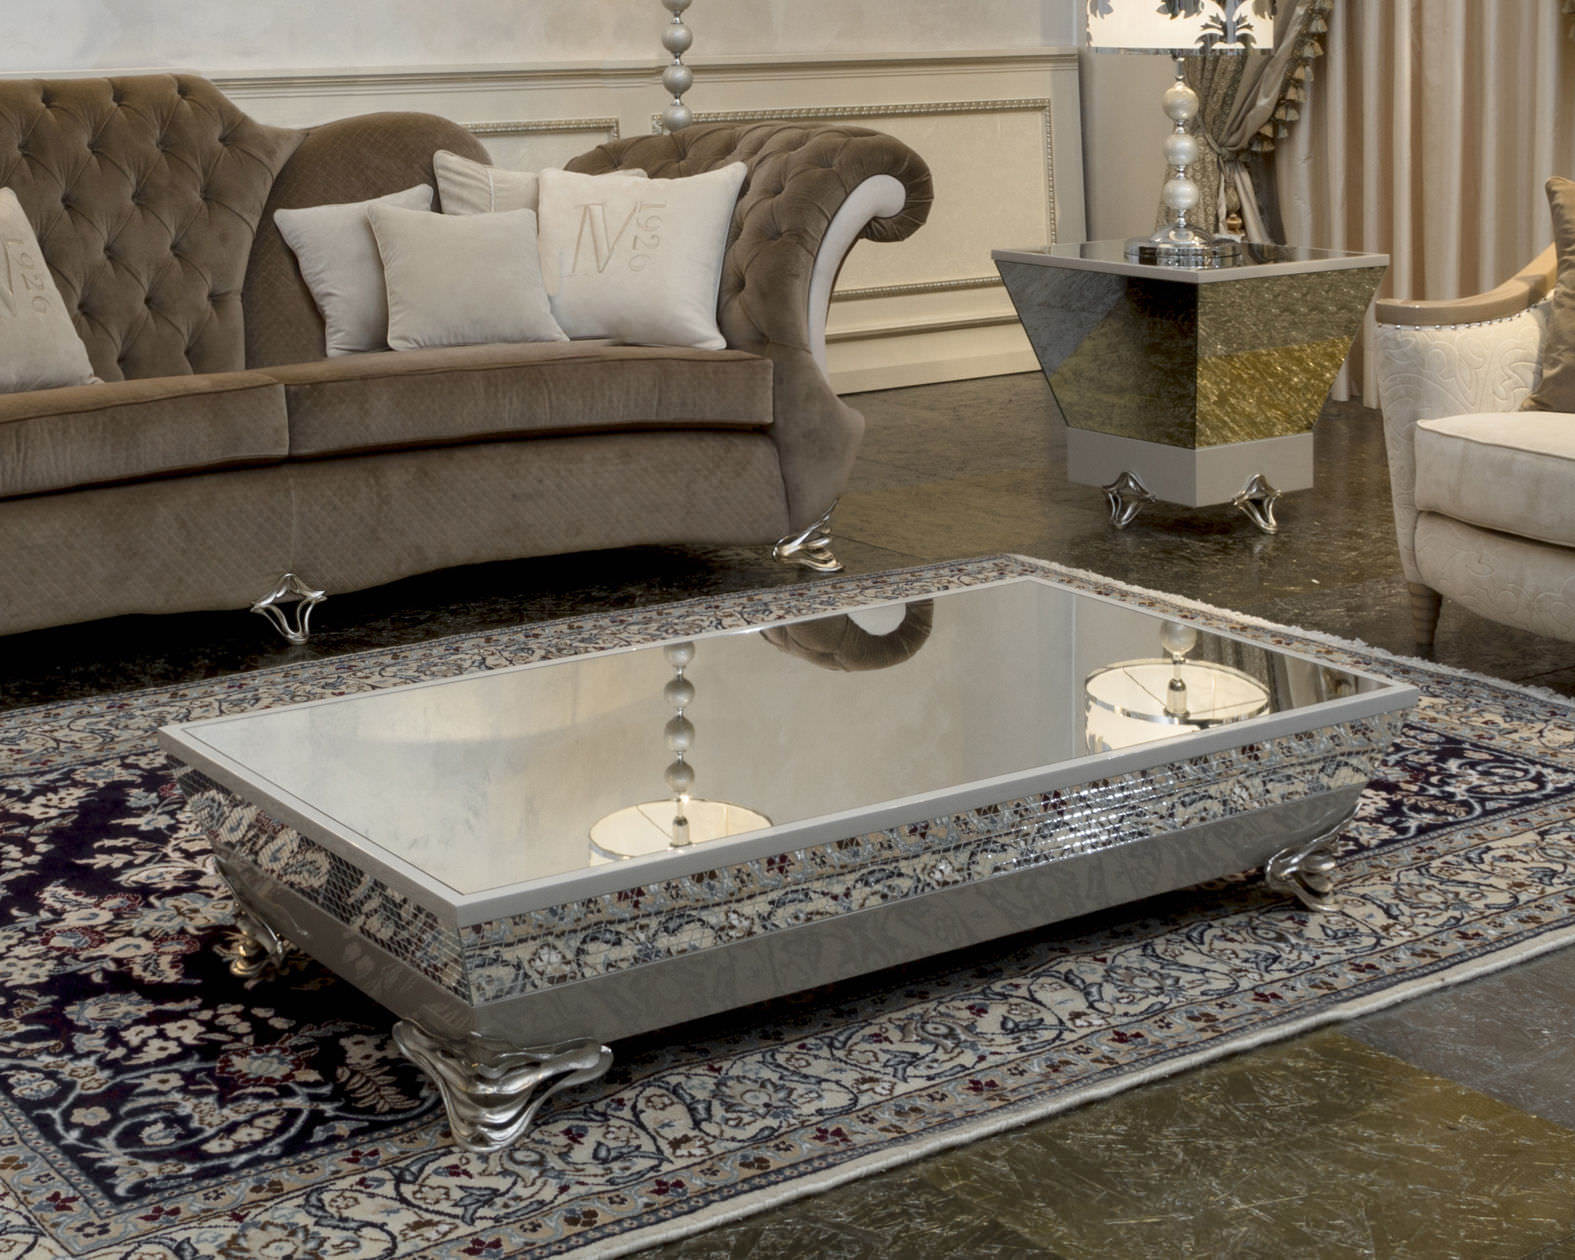 Luxury-Mirrored-Coffee-Table.jpg